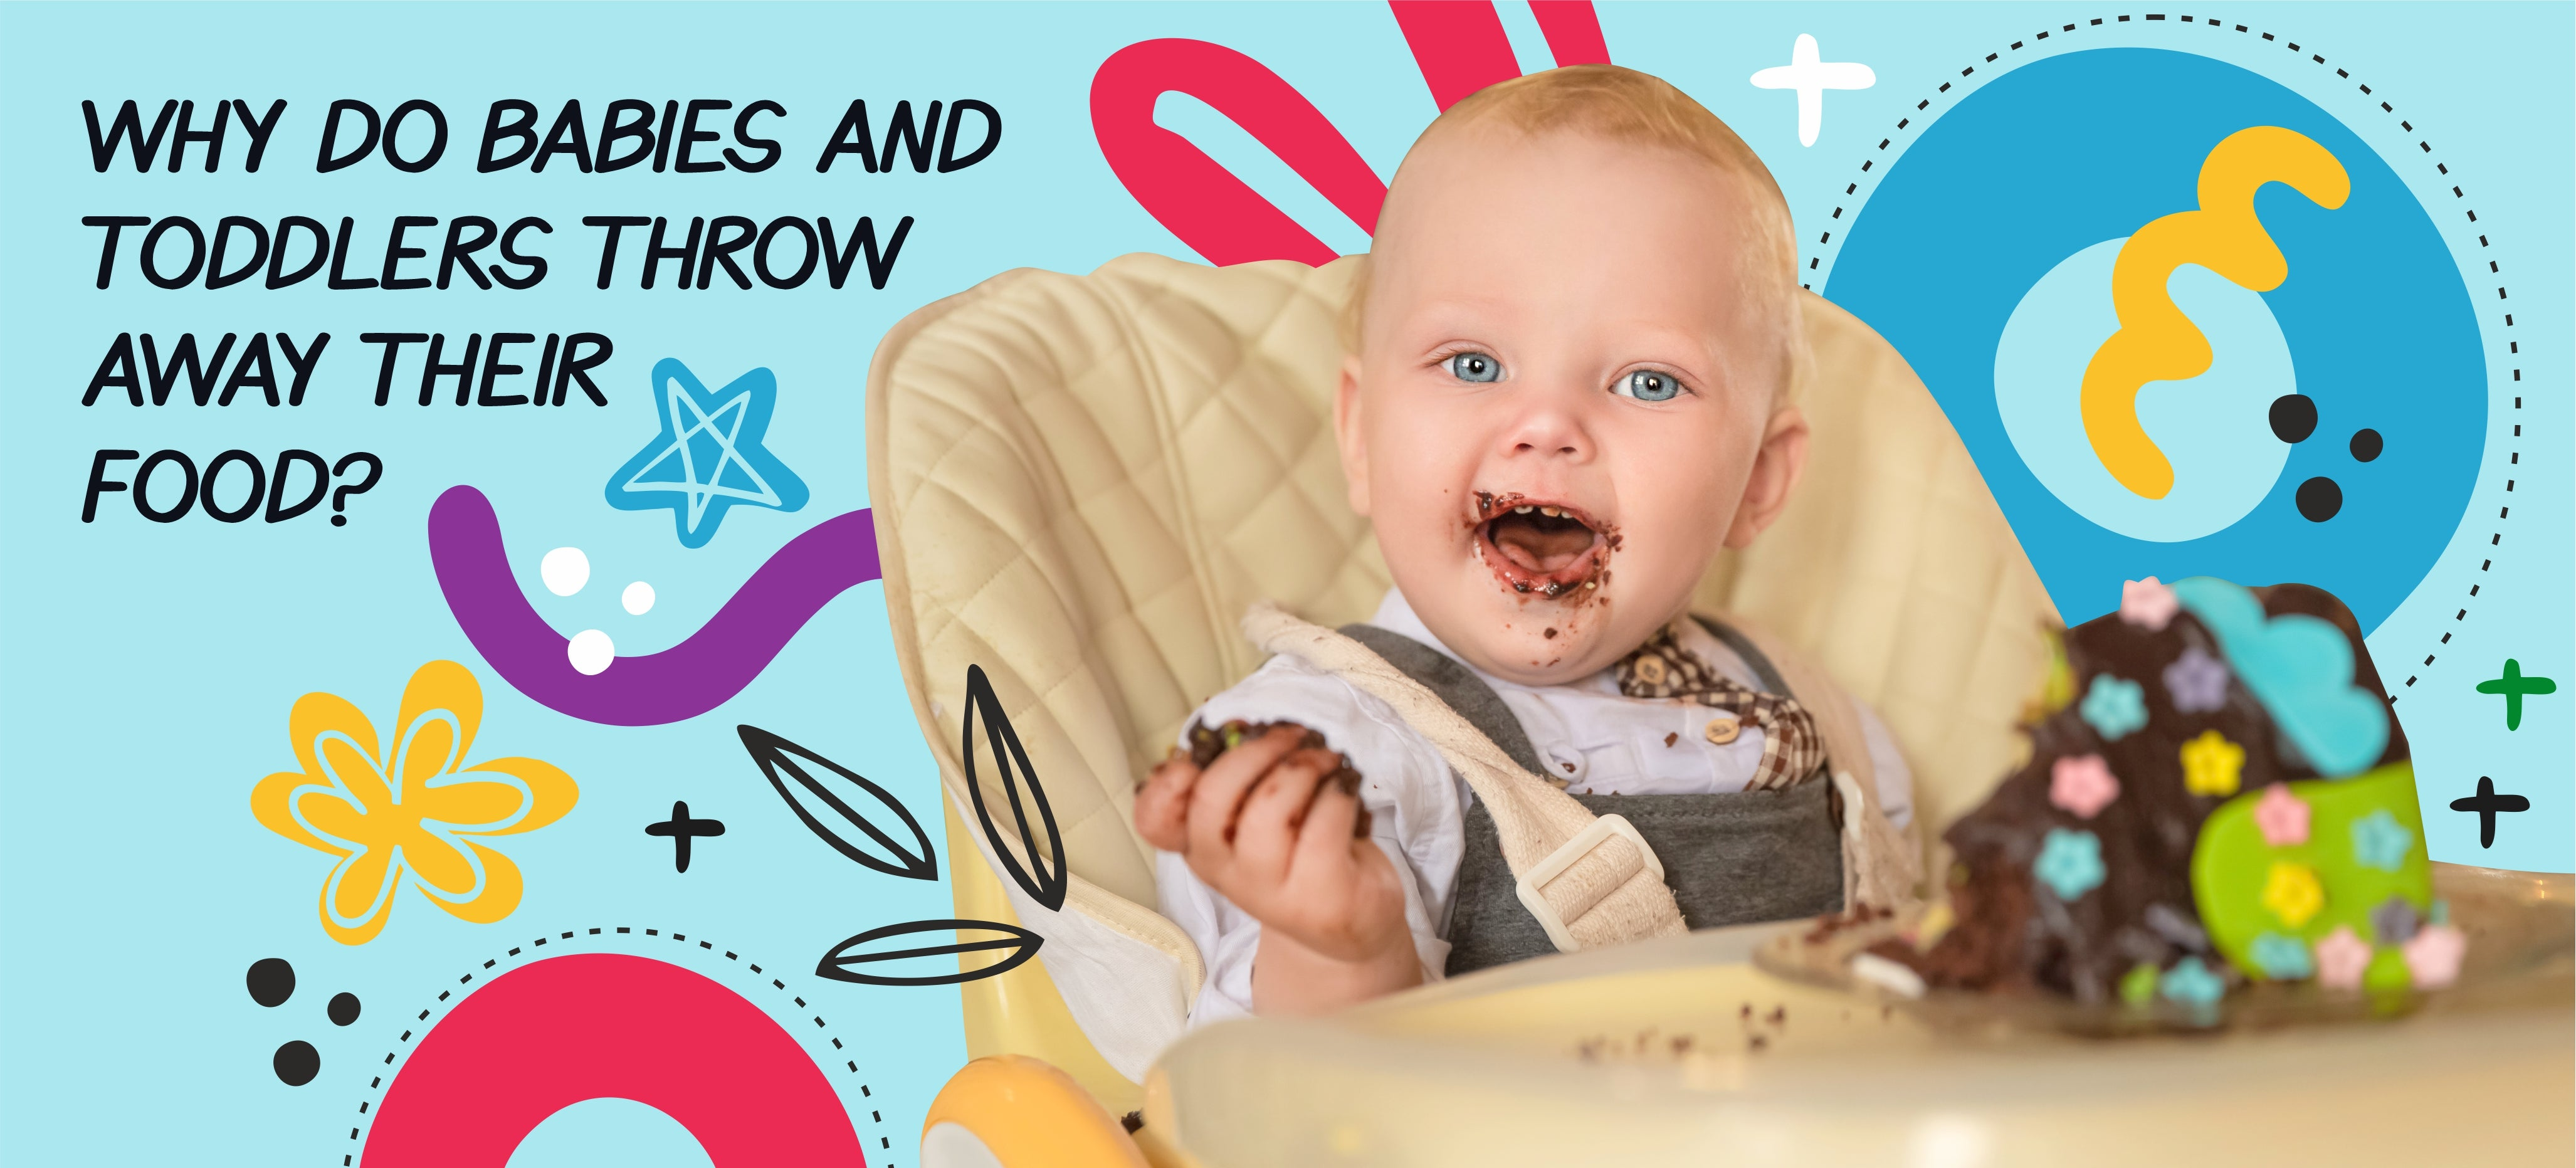 Why Do Babies and Toddlers Throw Away Their Food